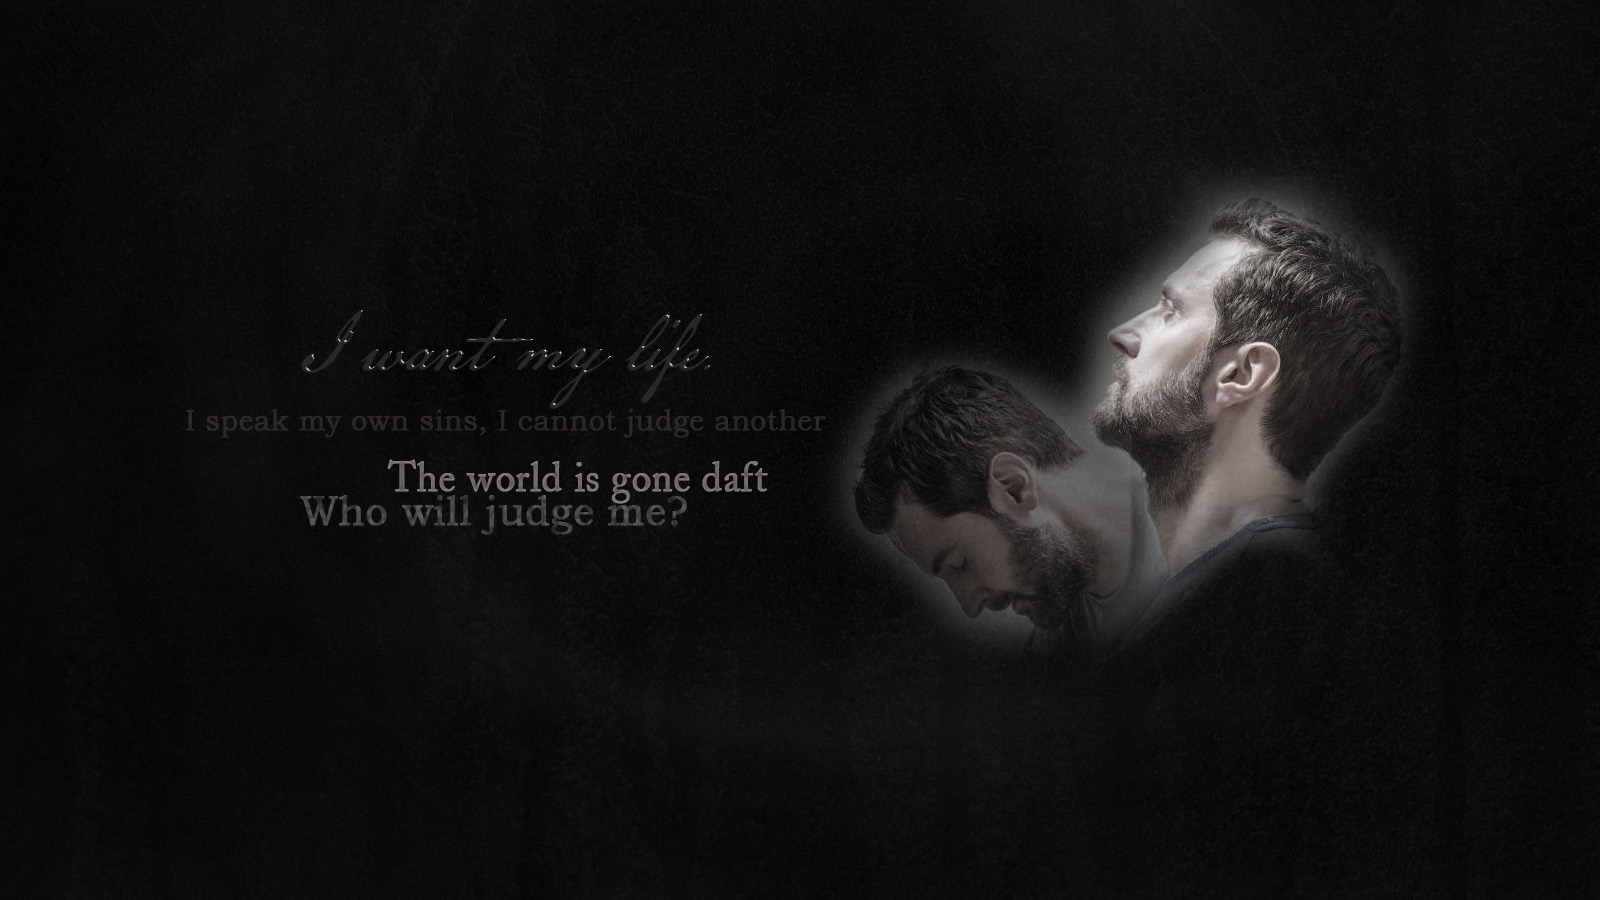 Richard Armitage Crucible wallpaper by bccmee 1600x900